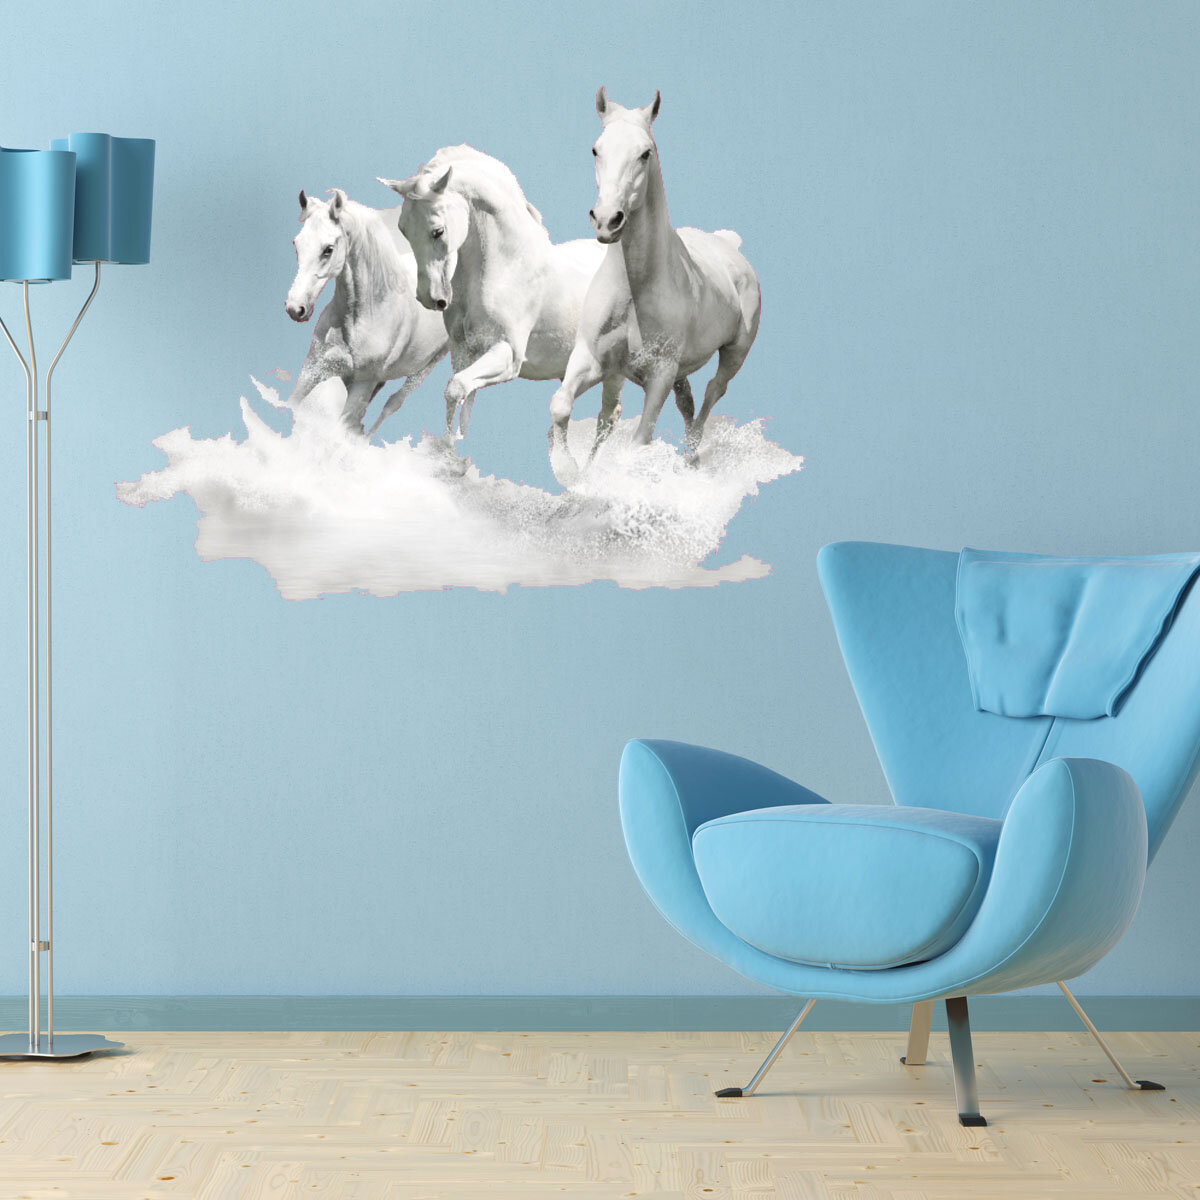 & Style and Apply White Horse Wall Decal | Wayfair